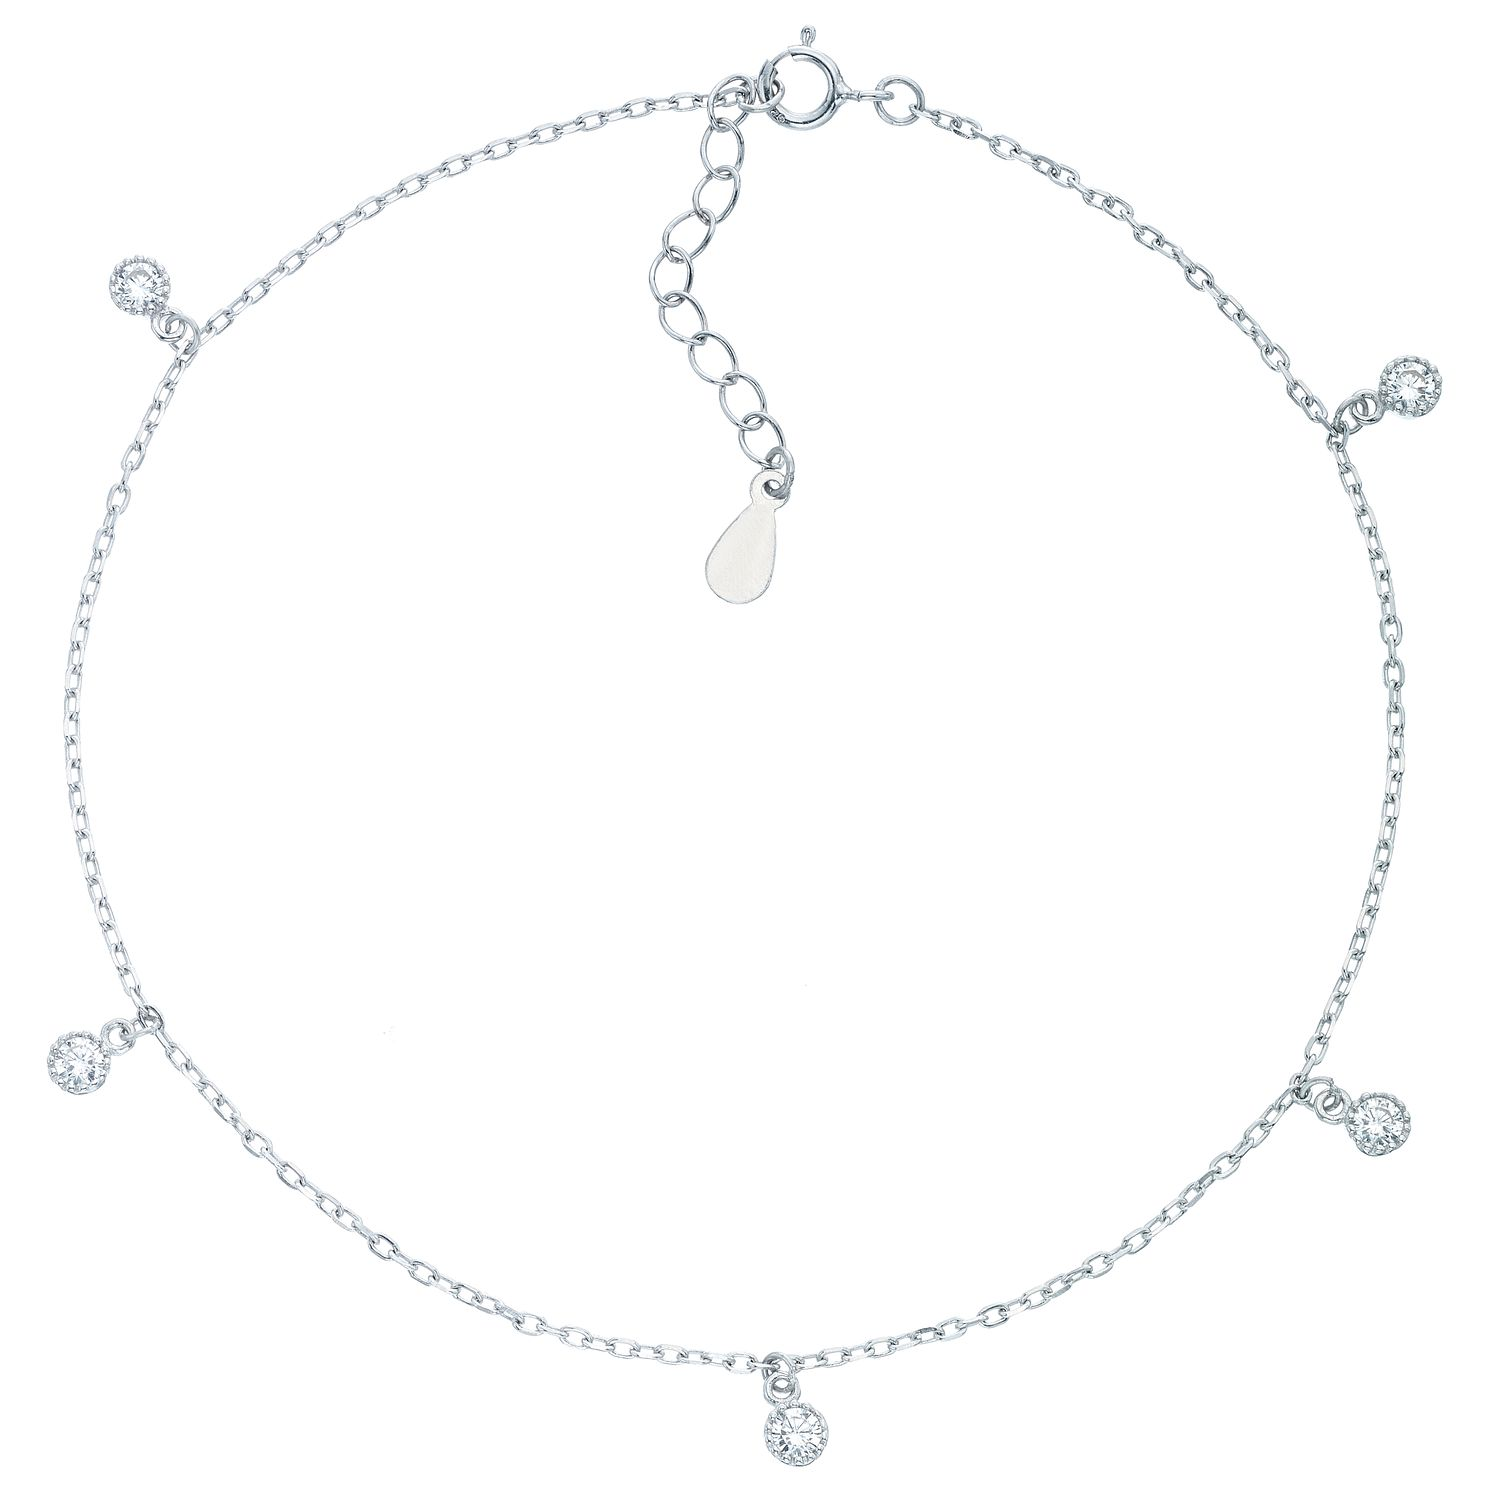 pin anklet round lifestyle chain zirconia cubic shiny multi finish cable rhodium color